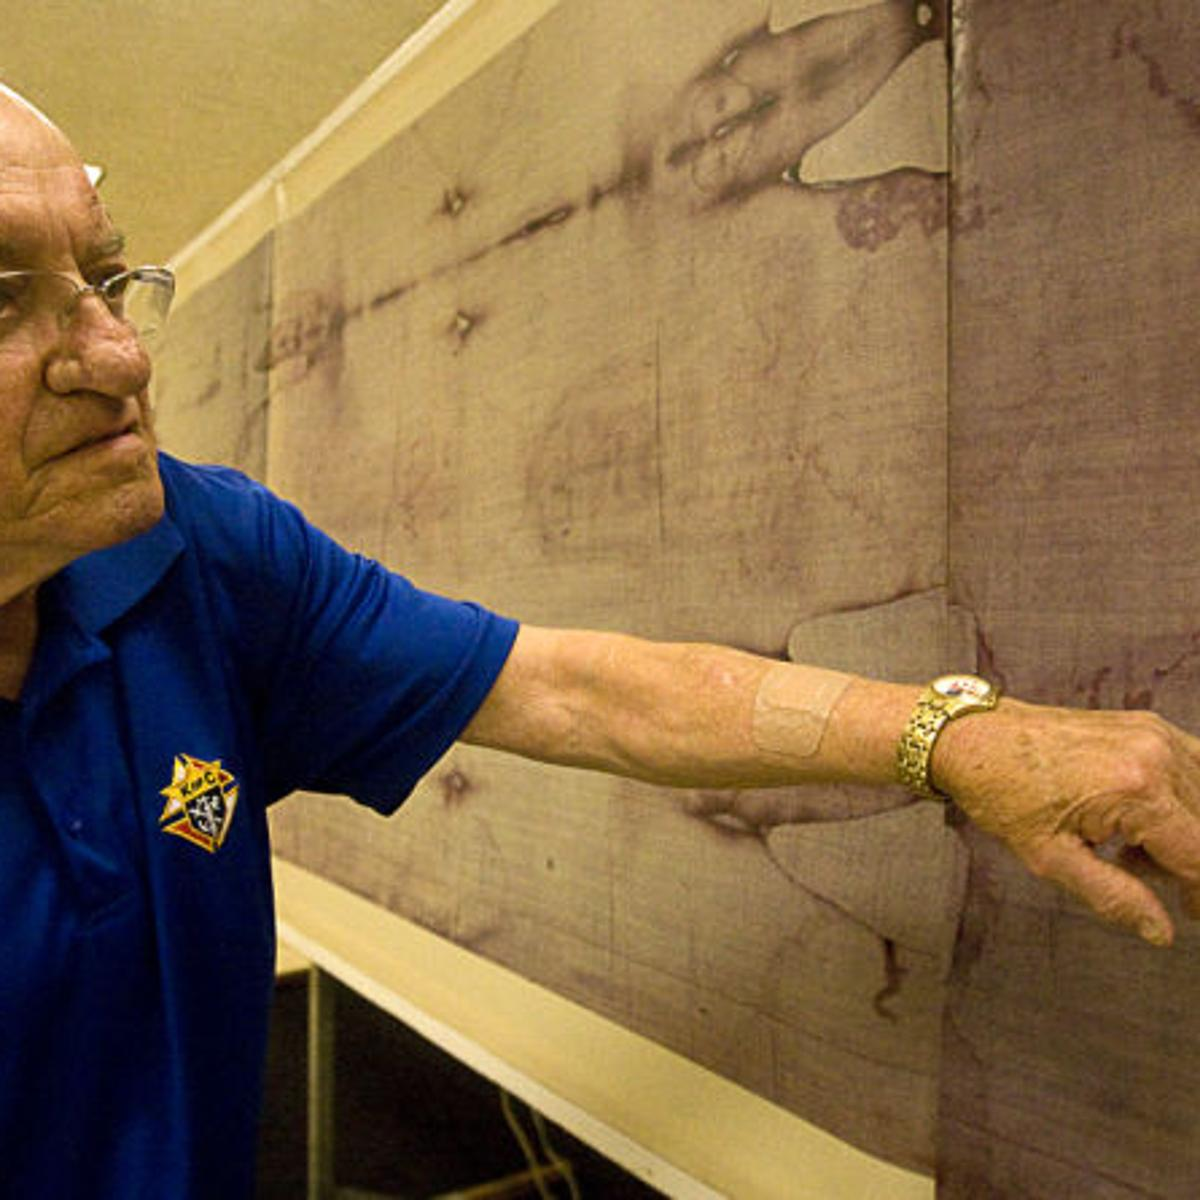 Decatur Knights of Columbus Hall hosts Shroud of Turin